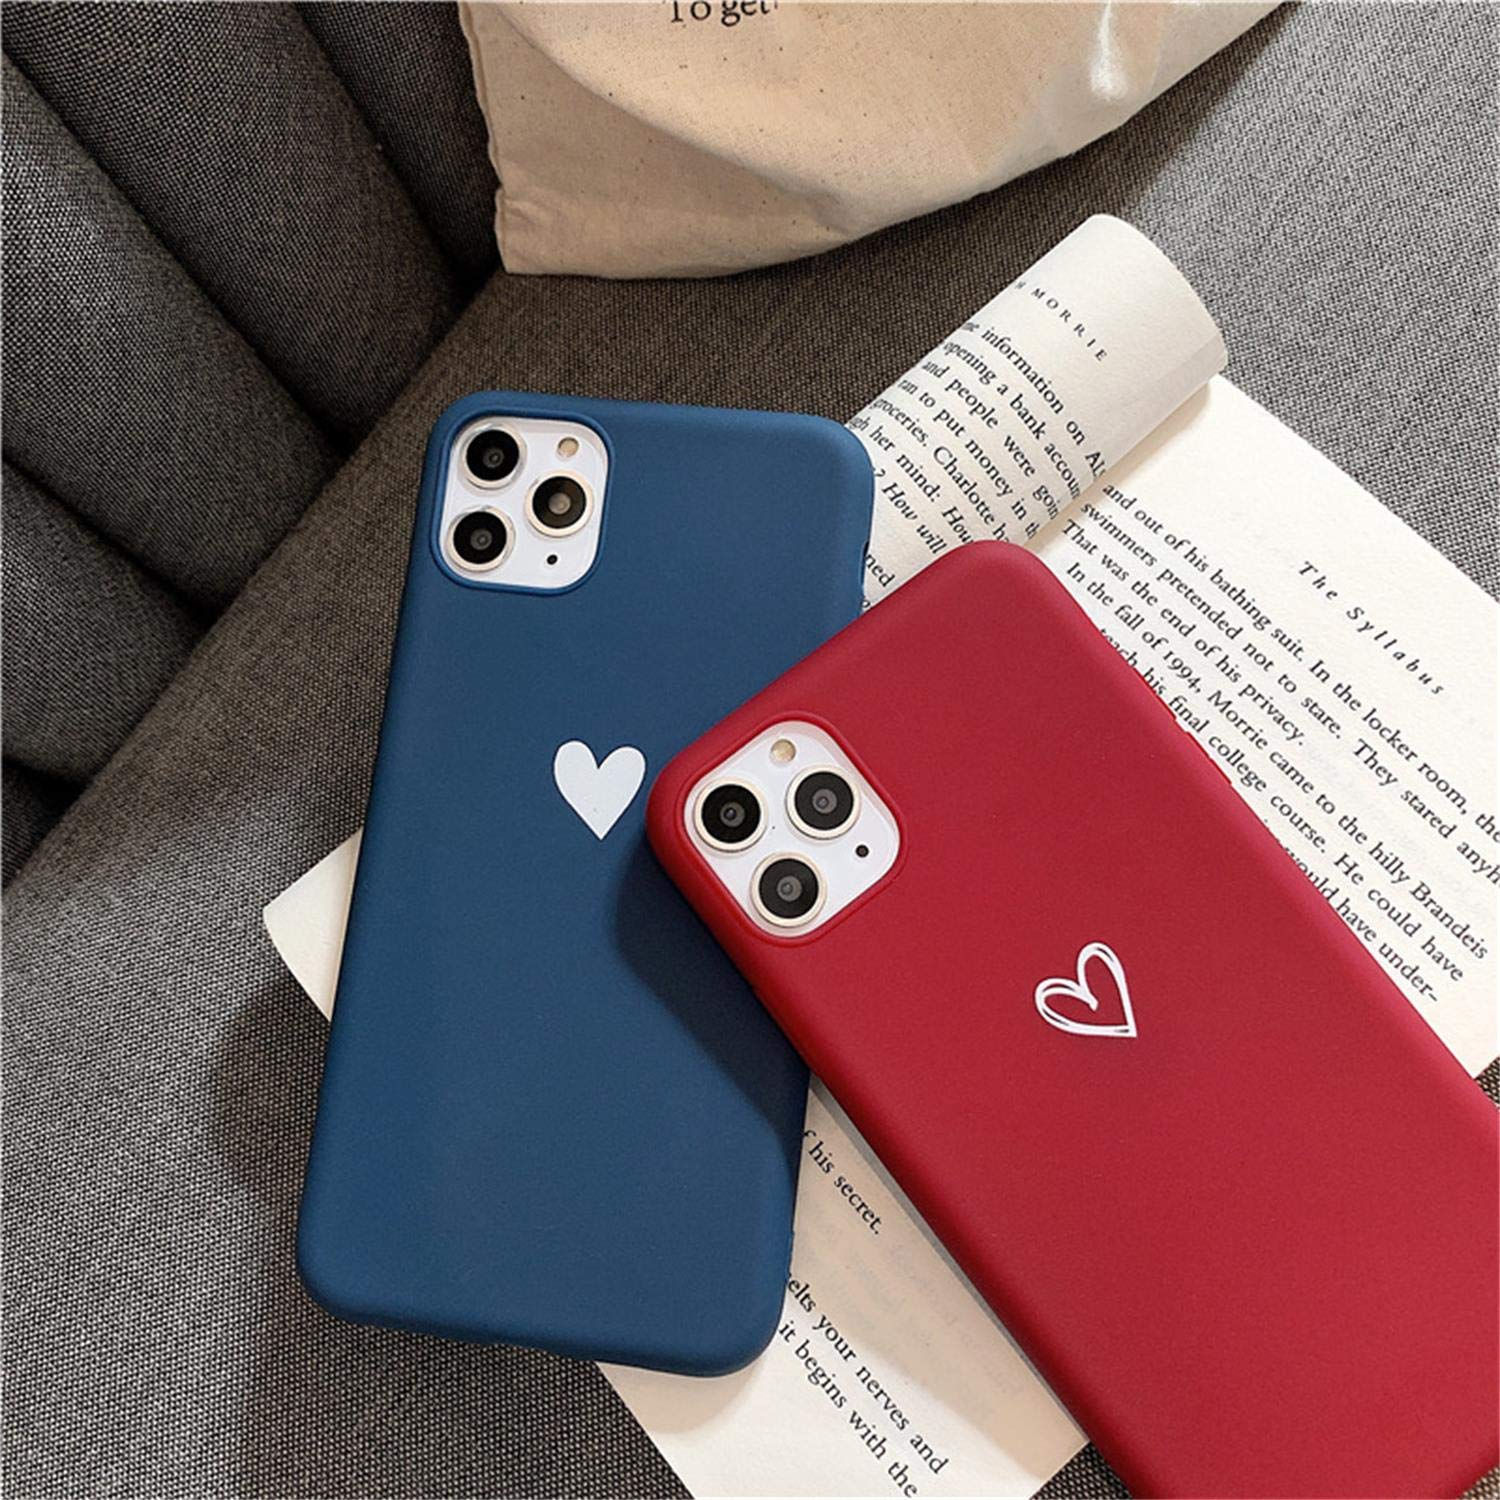 Custodia iPhone 11,Ultra Sottile Morbido Design Laser in Marmo Silicone Case,Antiurto Protettiva Case per iPhone 11 PRO Cover iPhone 11 PRO Max